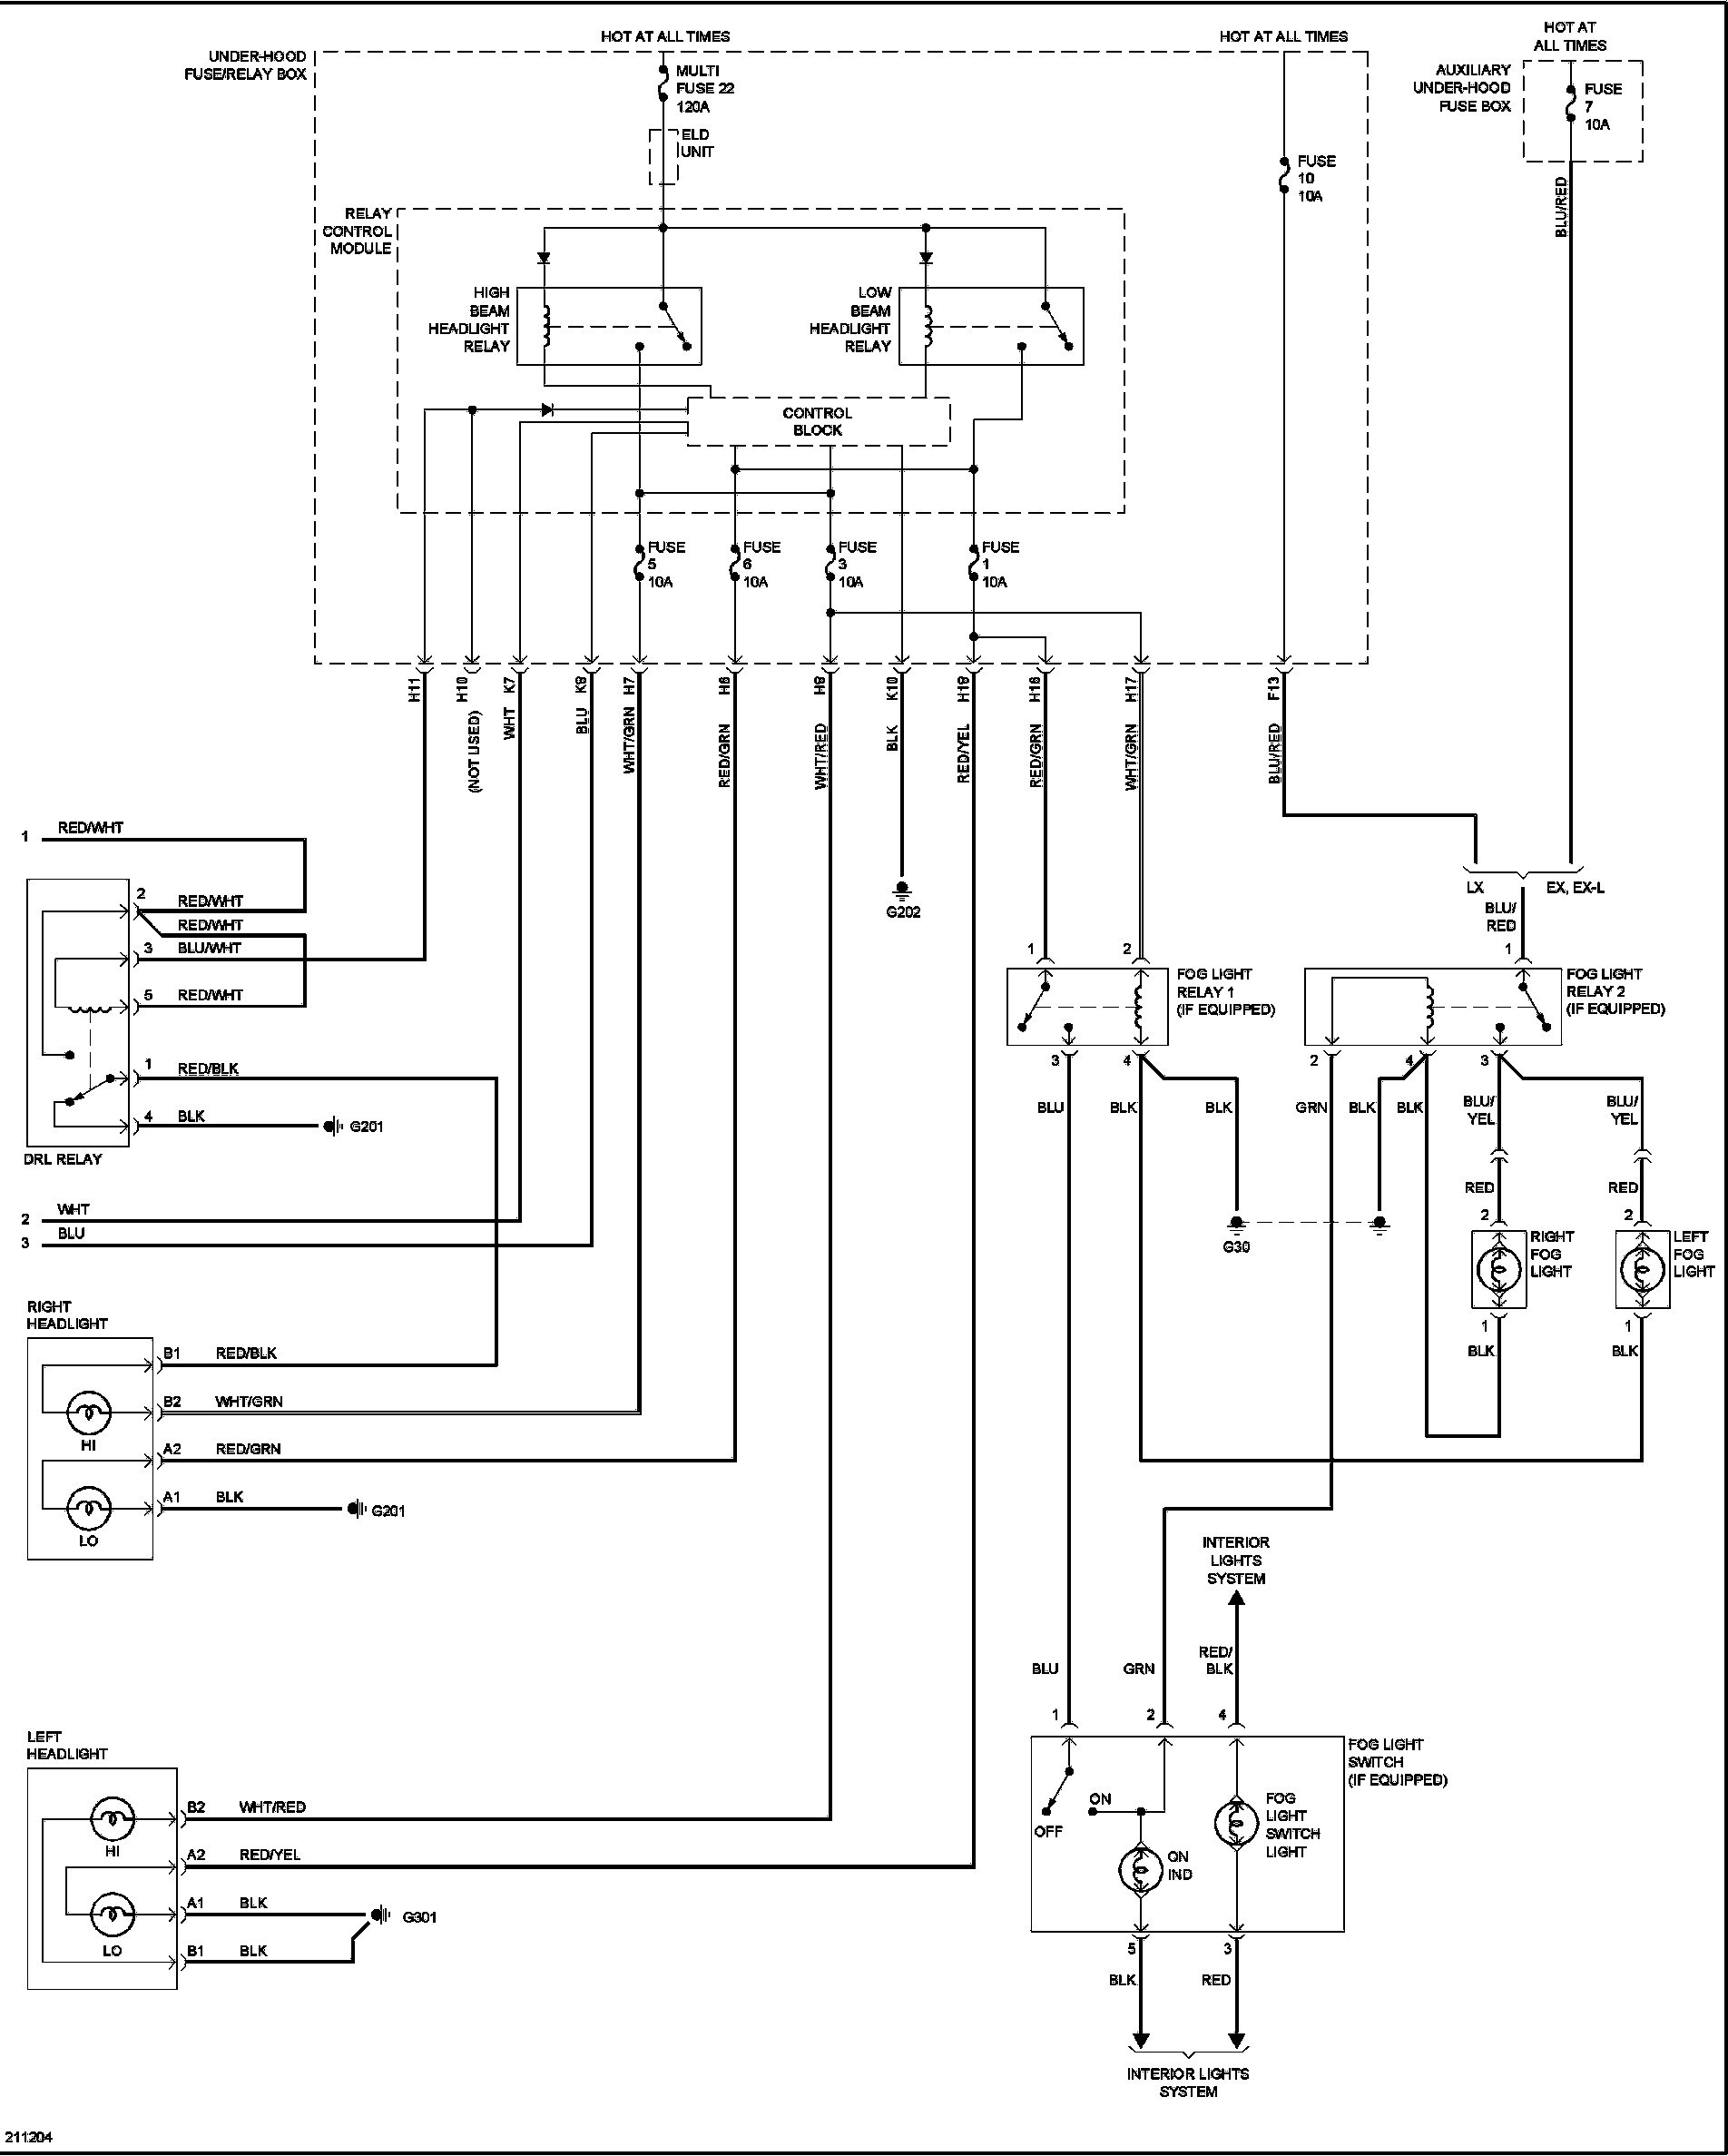 hight resolution of 1995 honda civic ex engine diagram wiring diagram used 95 honda civic engine diagram 1995 honda